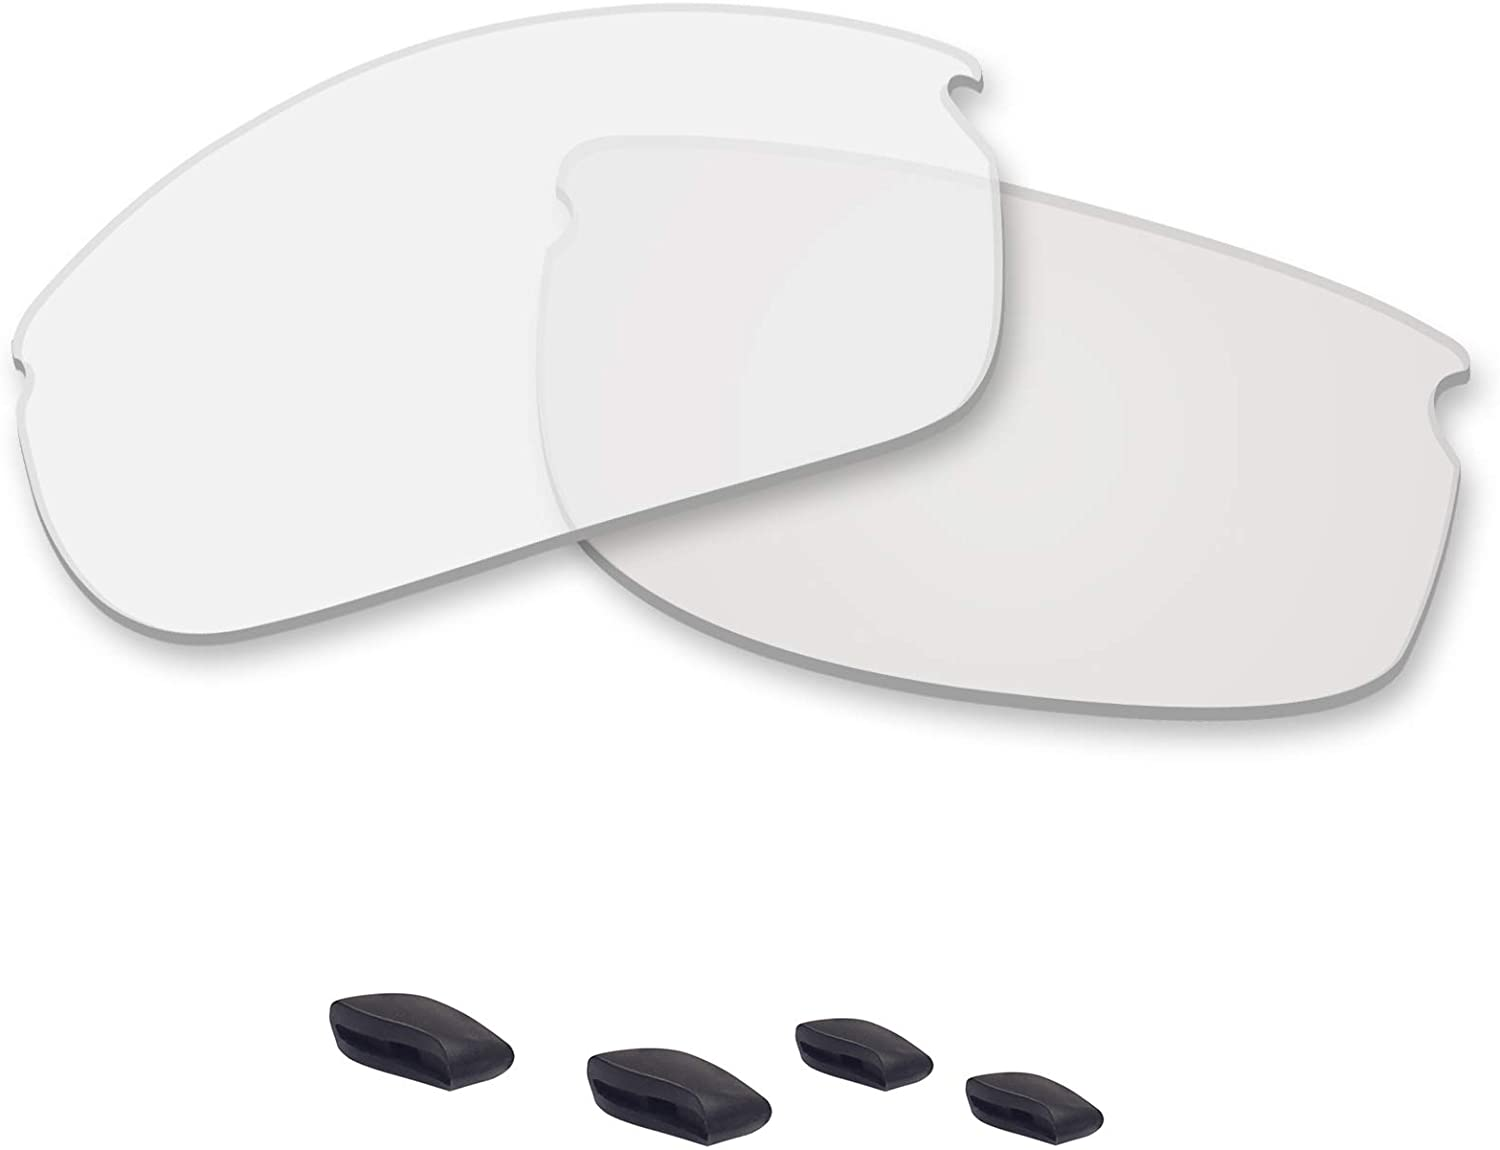 Betterun Polycarbonate Polarized Replacement Lenses/Nose Pad for Oakley Commit SQ